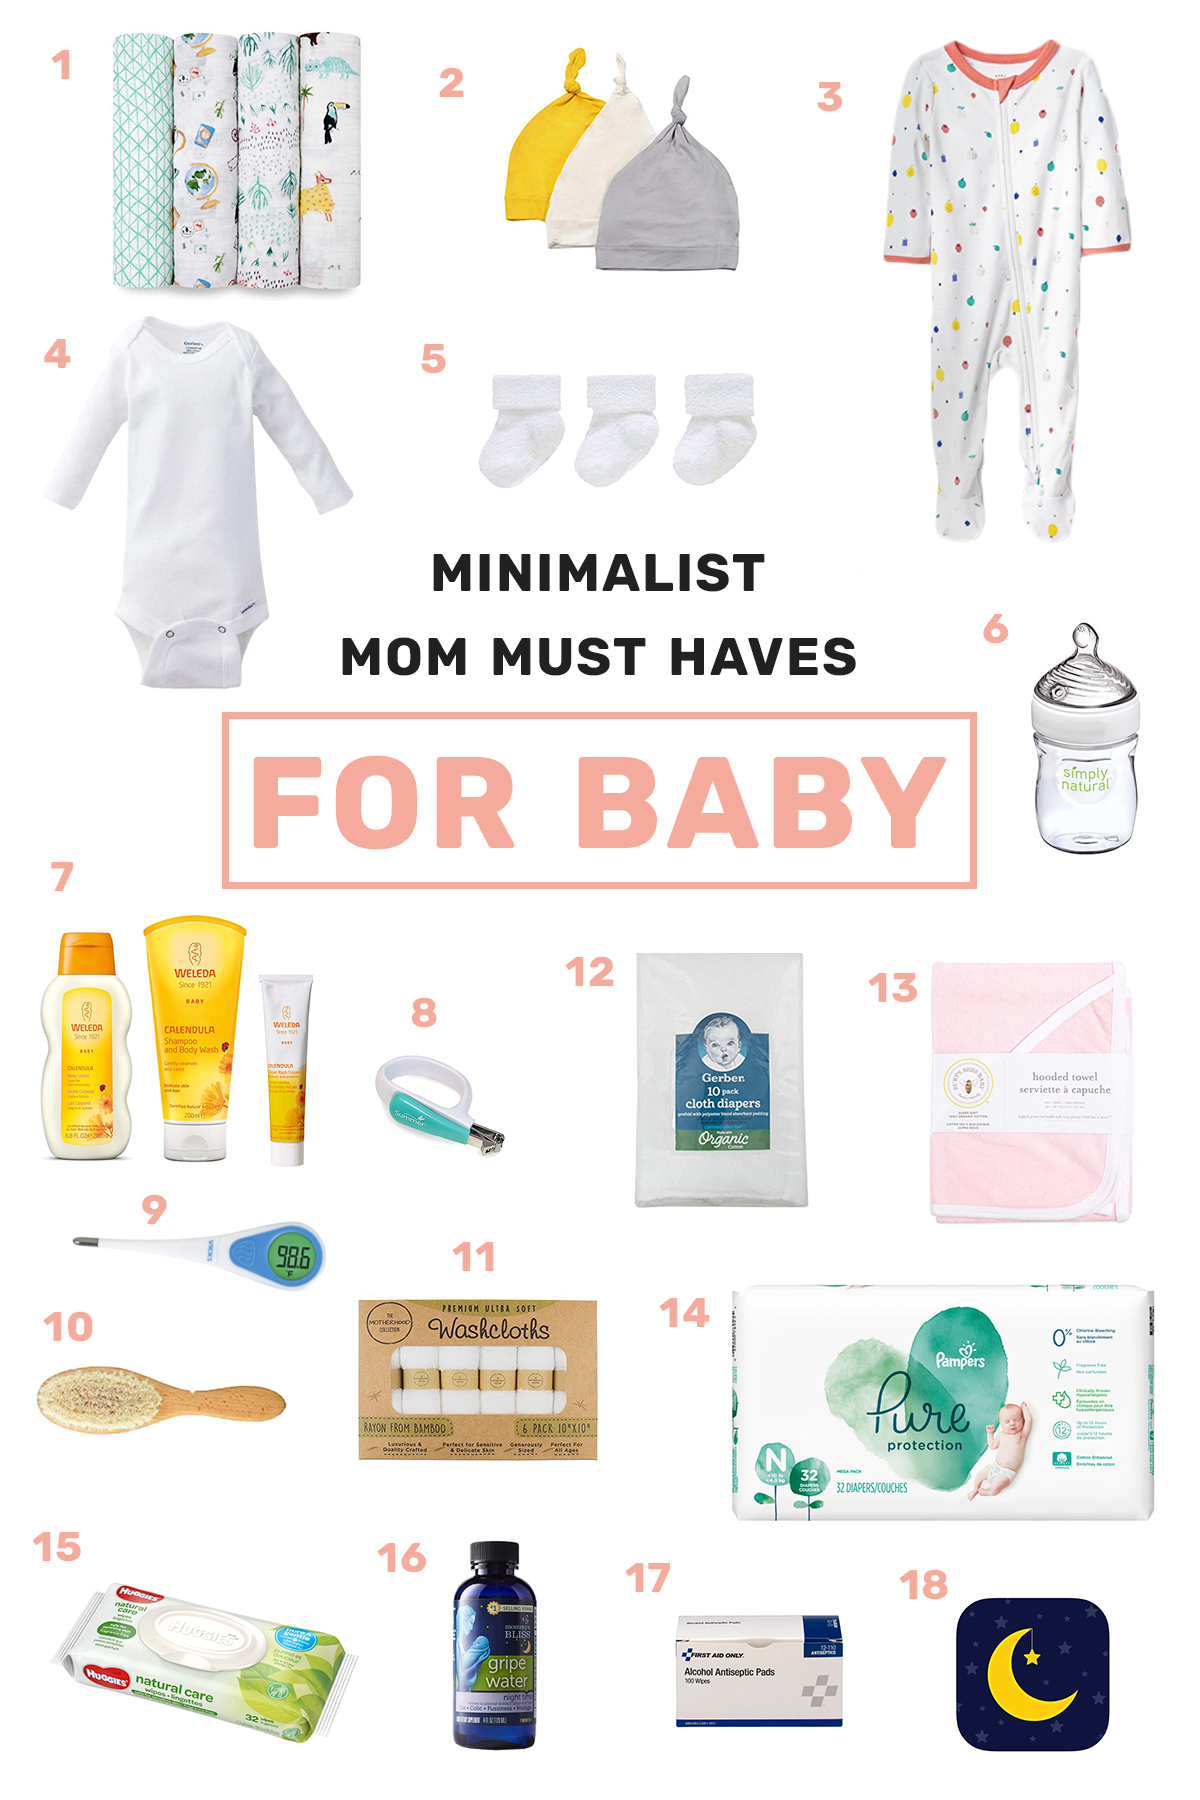 minimalist_mom_must_haves_for_baby.jpg